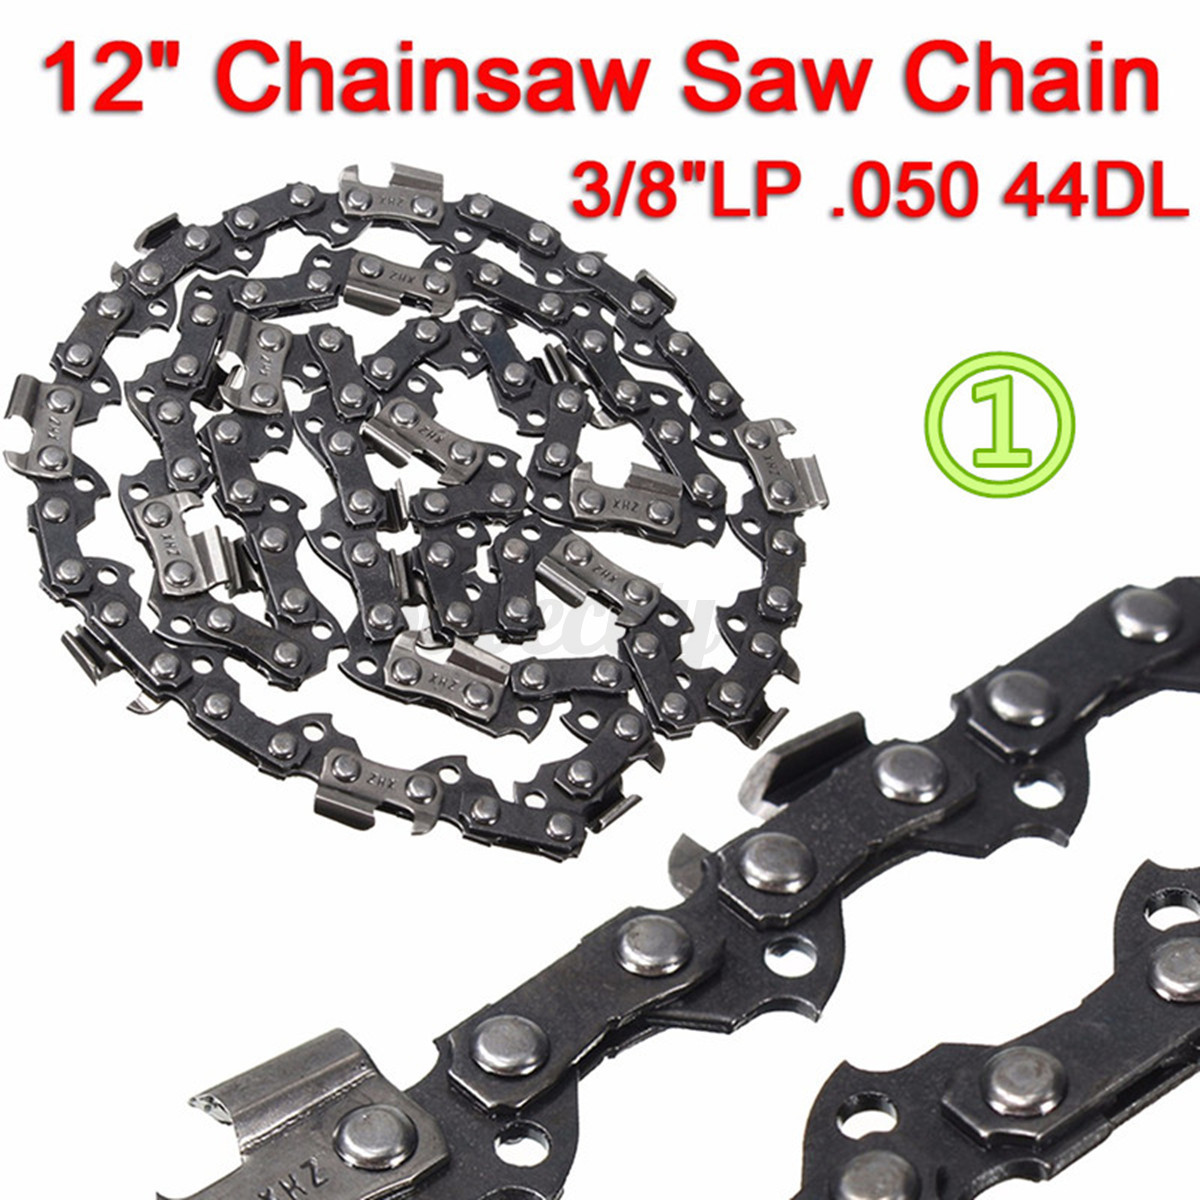 Chain Saw Blades : Replacement  chainsaw saw chain